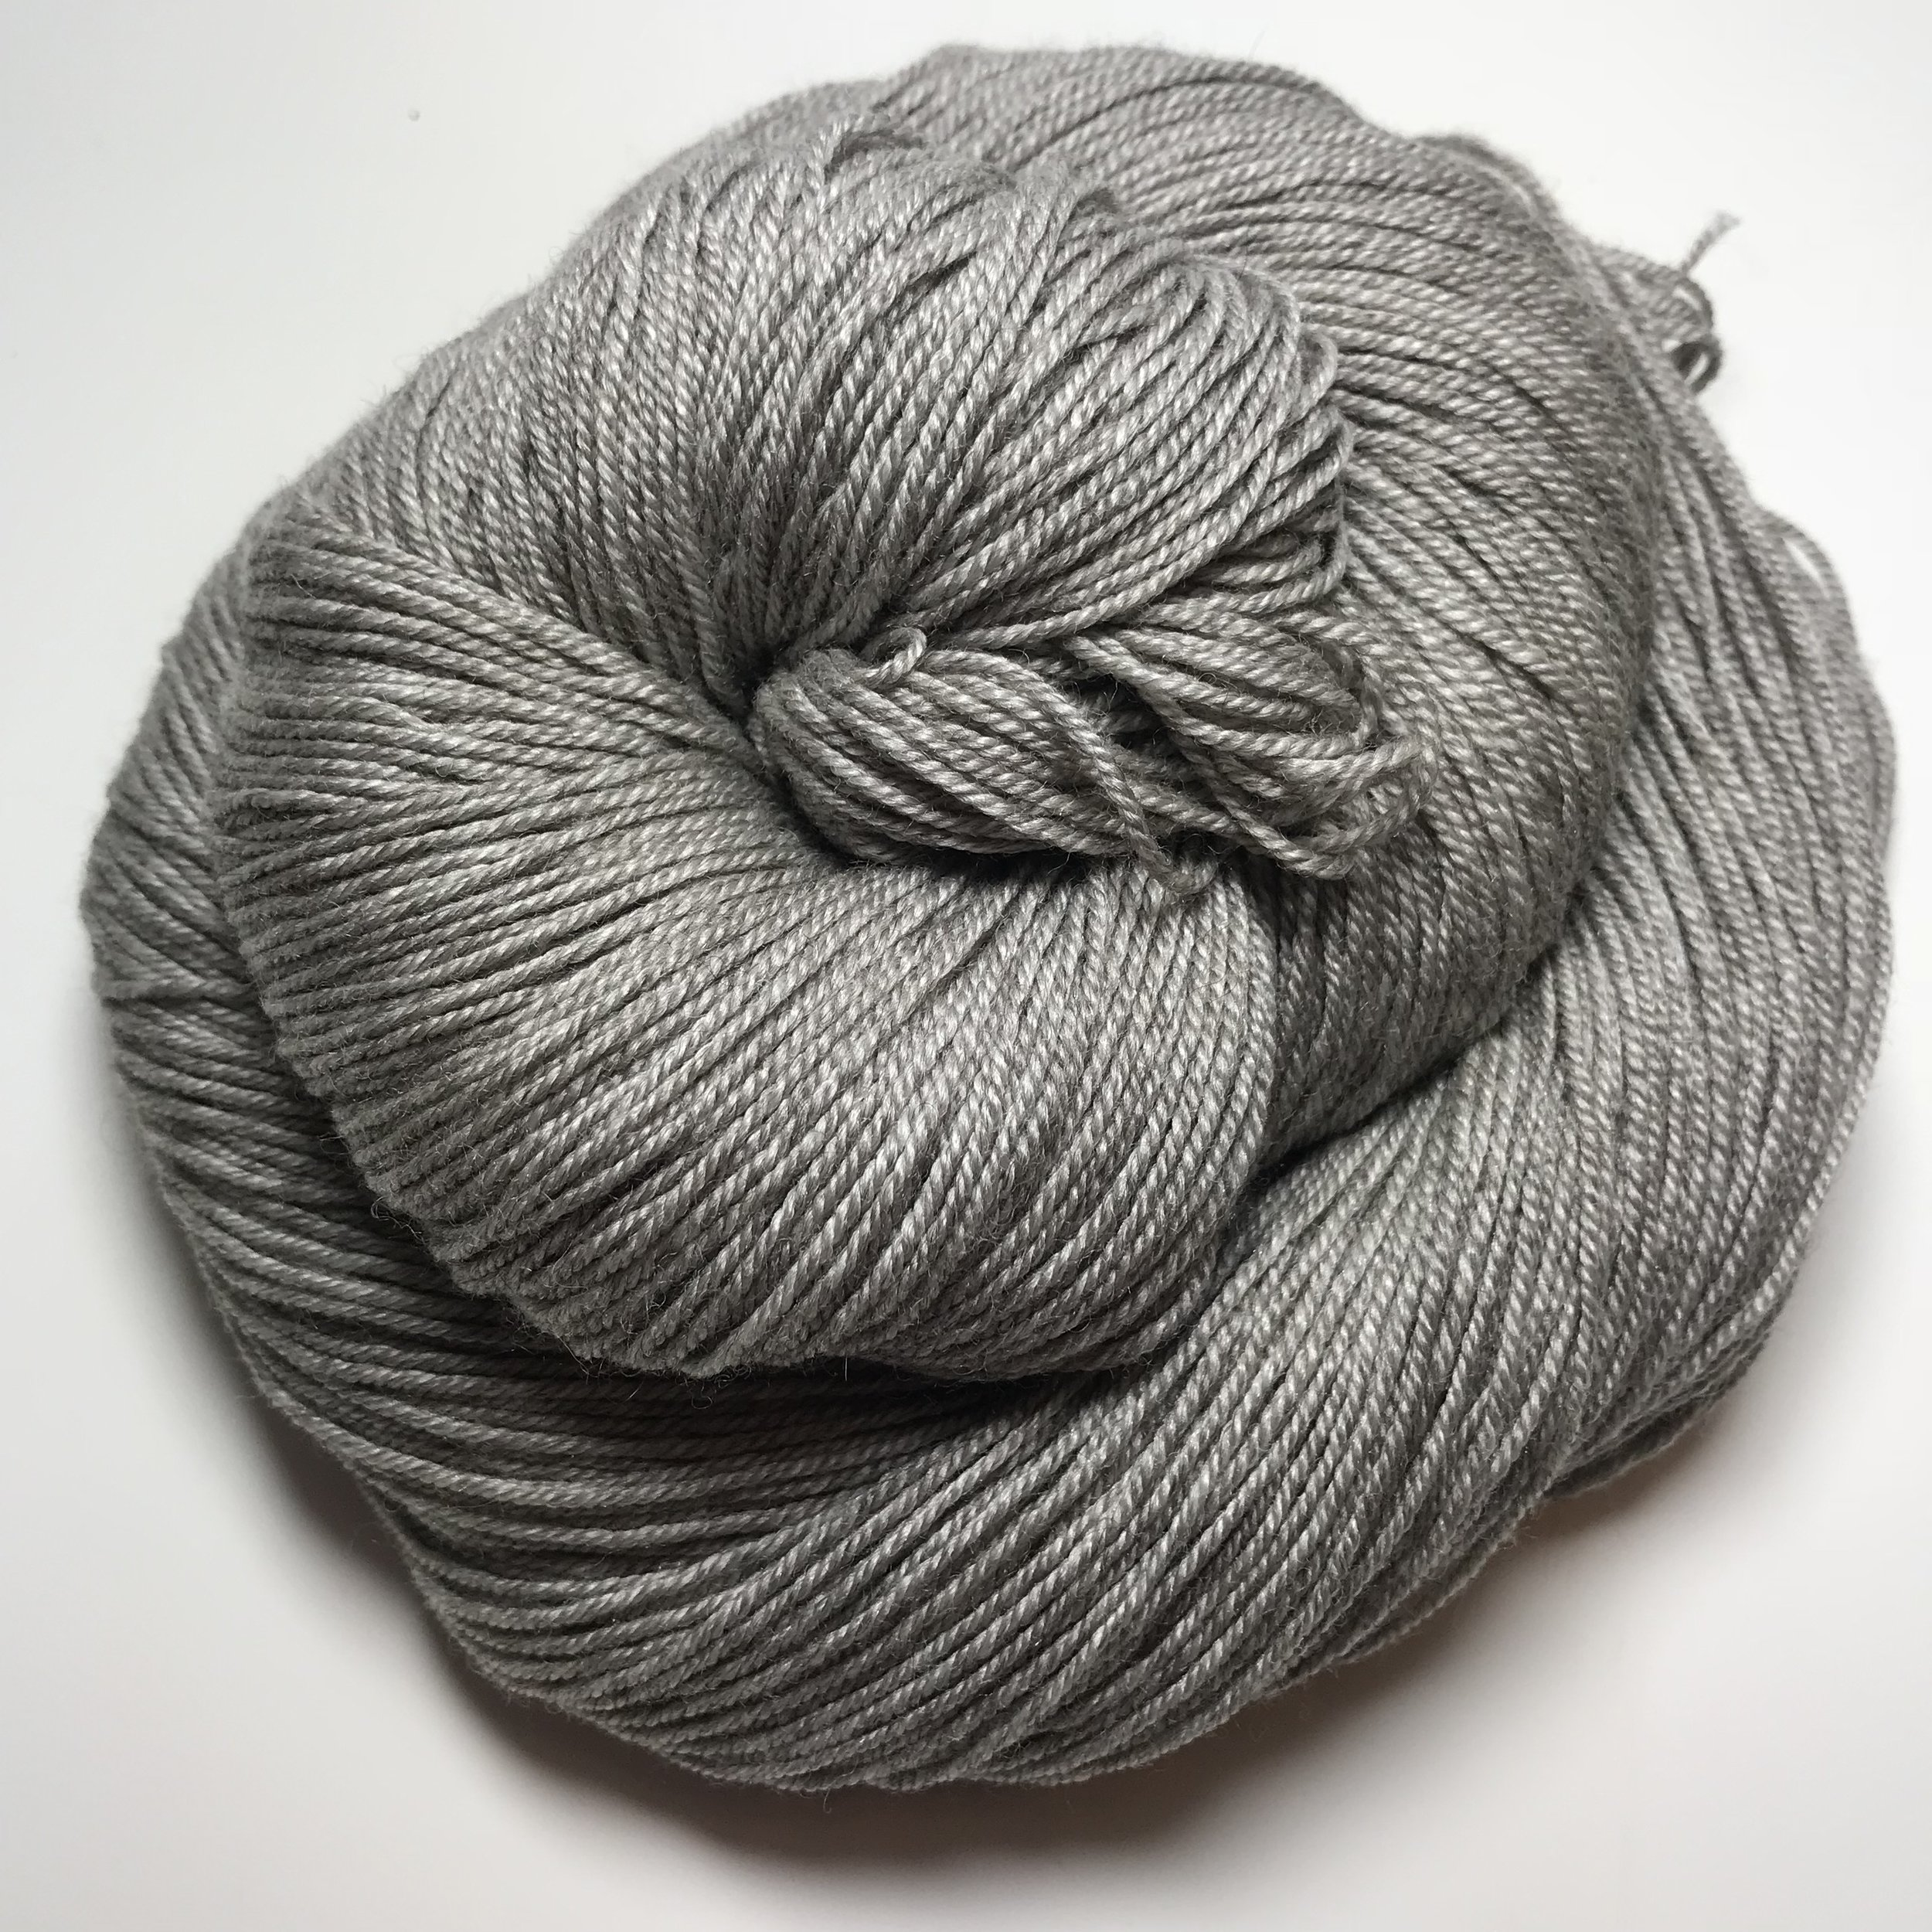 Queen Bee Sock - $40 3-ply 65/20/15 SW Merino/Silk/Yak. This is an absolutely luxurious yarn base. The gray brings a richness to every color that is put on top of it. Recommended Needle Size: 2.5-4mm (US 1-6). Gauge (stocking stitch): 28sts x 36 rows over 10cm (4 inches) on 3.25mm (US 3) needles.100g/400m/438yds